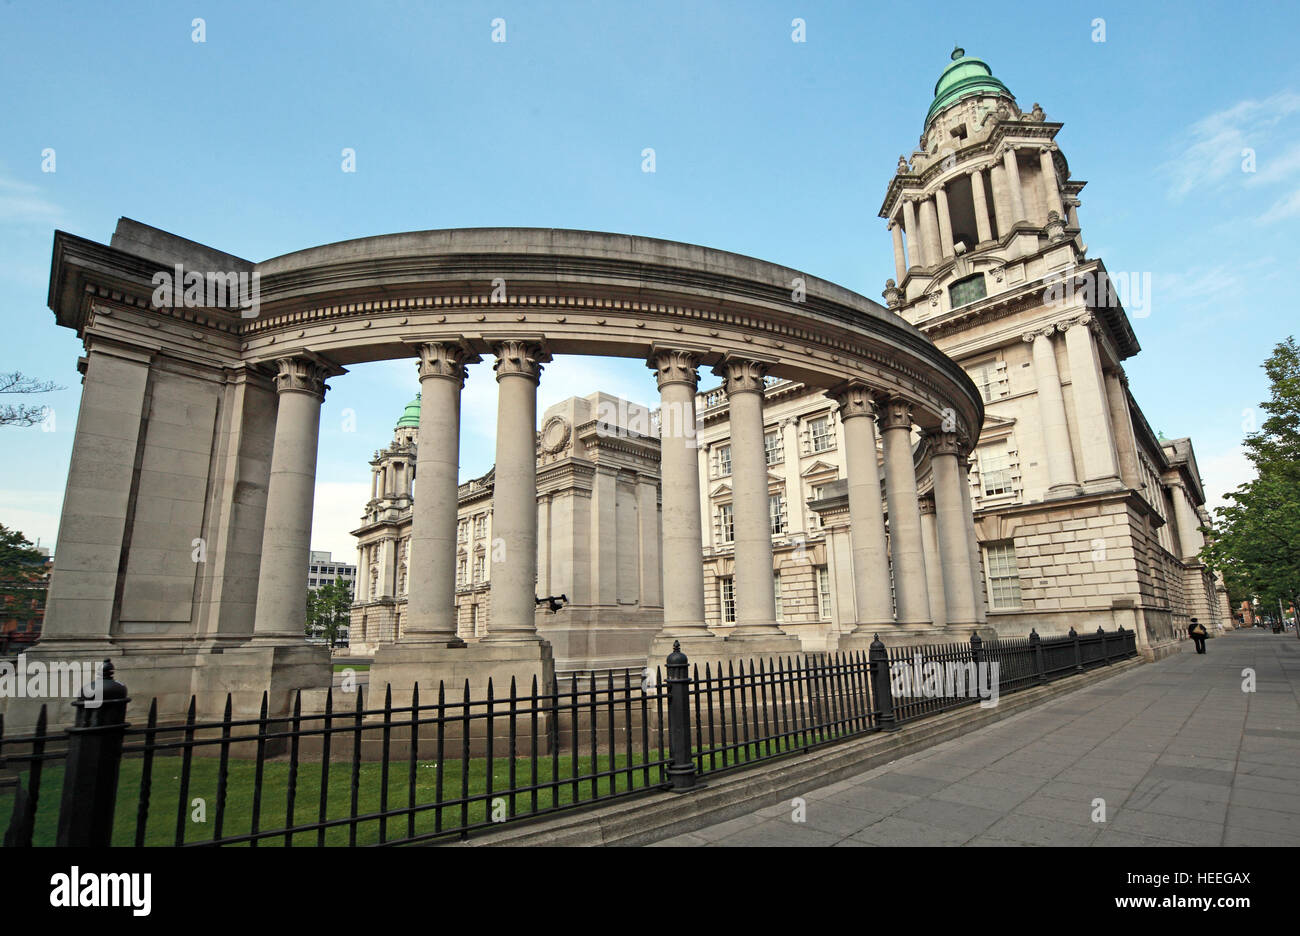 Belfast City Hall,Baroque,Revival,Architecture,building,white,stone,Donegall Square,Northern,Ireland,GoTonySmith,@HotpixUK,Tony,Smith,UK,GB,Great,Britain,United,Kingdom,Irish,British,Ireland,problem,with,problem with,issue with,NI,Northern,Northern Ireland,Belfast,City,Centre,Art,Artists,the,troubles,The Troubles,Good Friday Agreement,Peace,honour,painting,wall,walls,tribute,republicanism,Fight,Justice,West,Beal,feirste,martyrs,social,tour,tourism,tourists,urban,six,counties,6,backdrop,county,Antrim,Buy Pictures of,Buy Images Of,Images of,Stock Images,Tony Smith,United Kingdom,Great Britain,British Isles,Irish History,Ireland History,Northern Ireland History